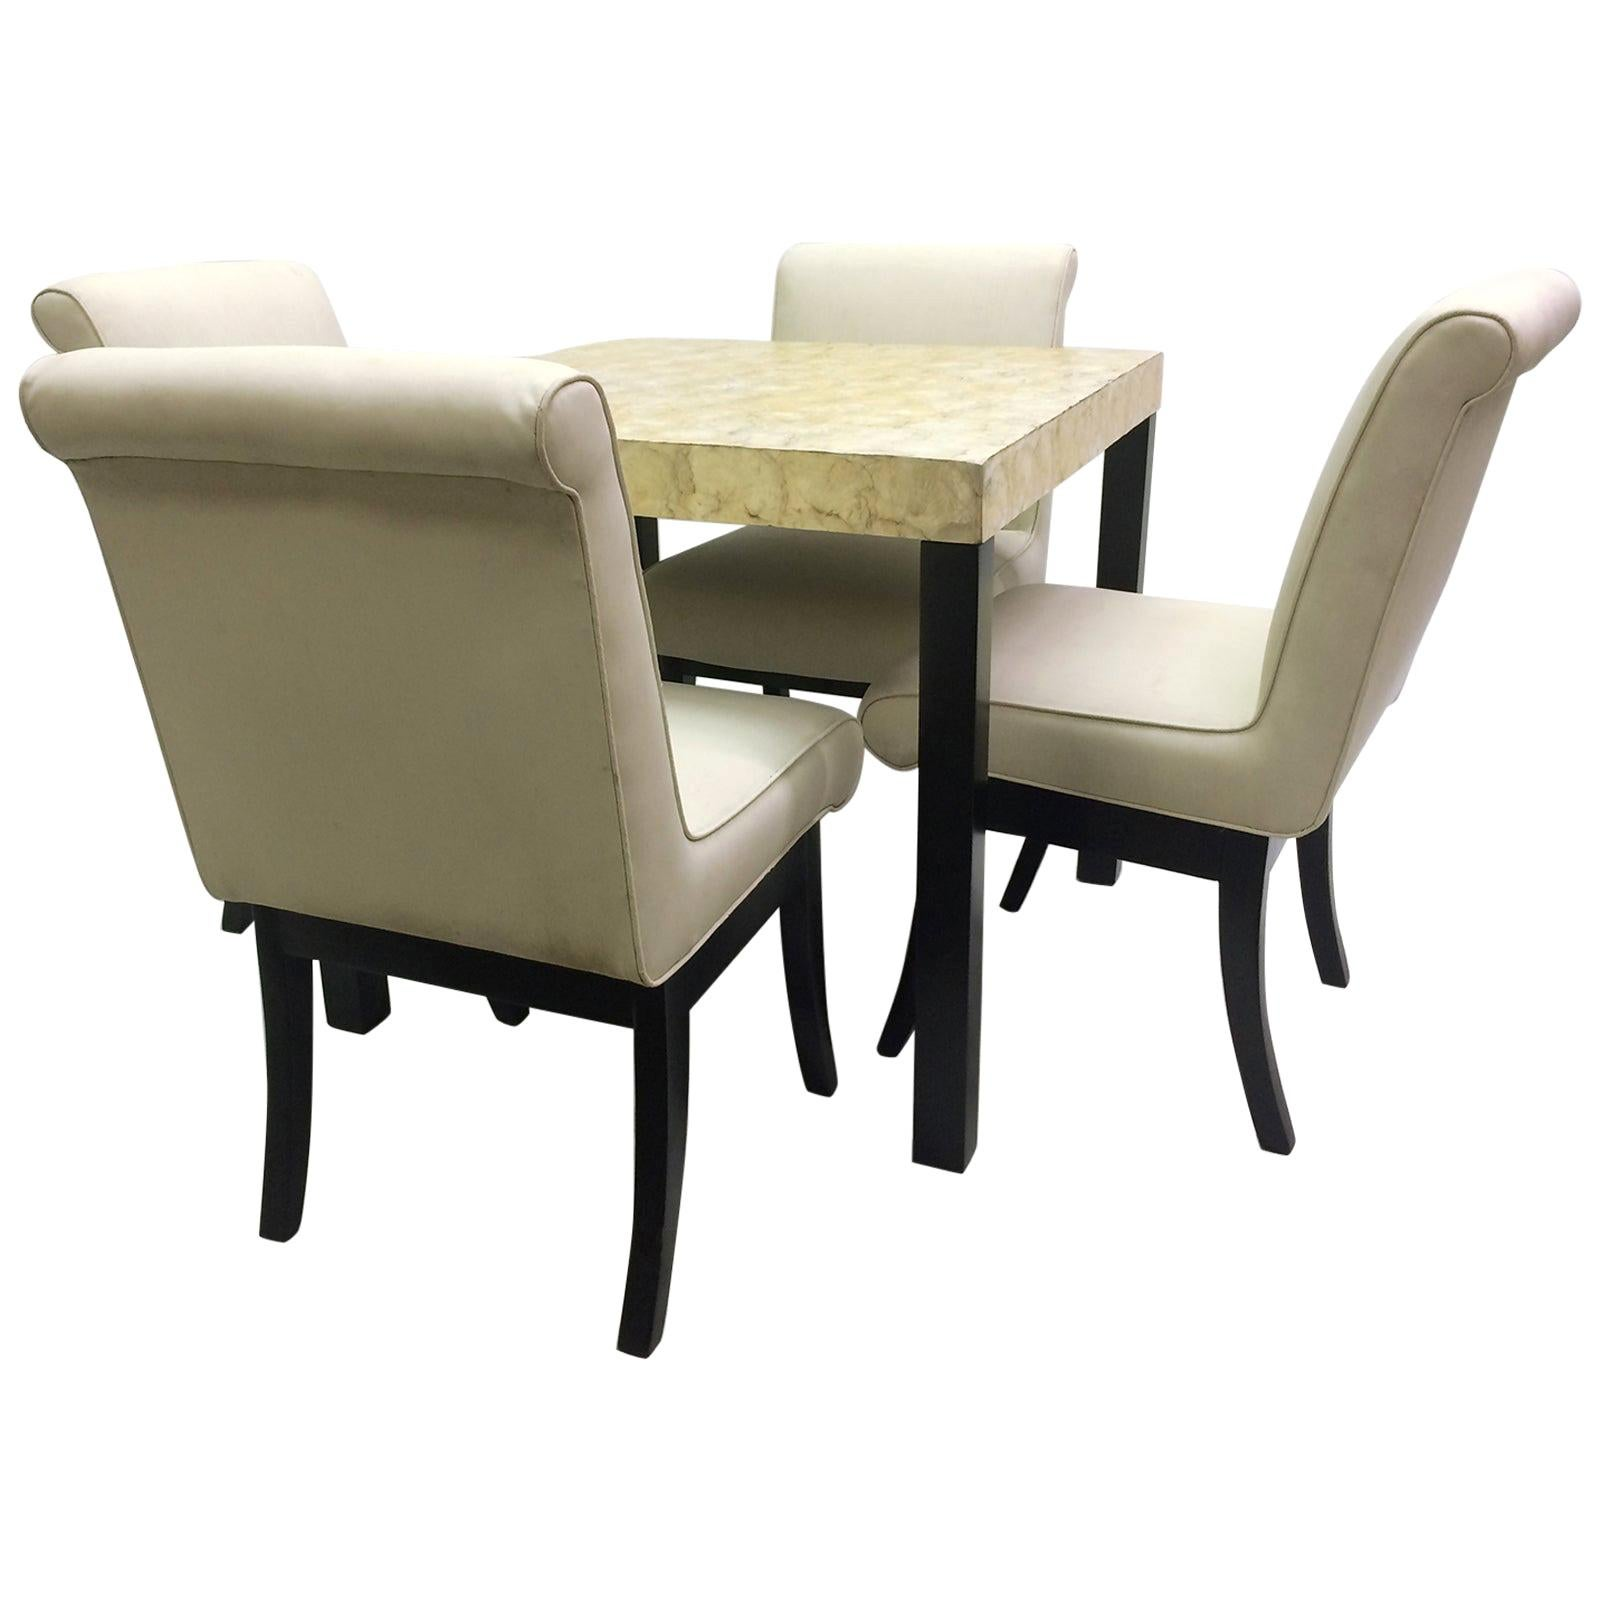 VKG Dining or Game Set with Abalone Top Table and Four Chairs